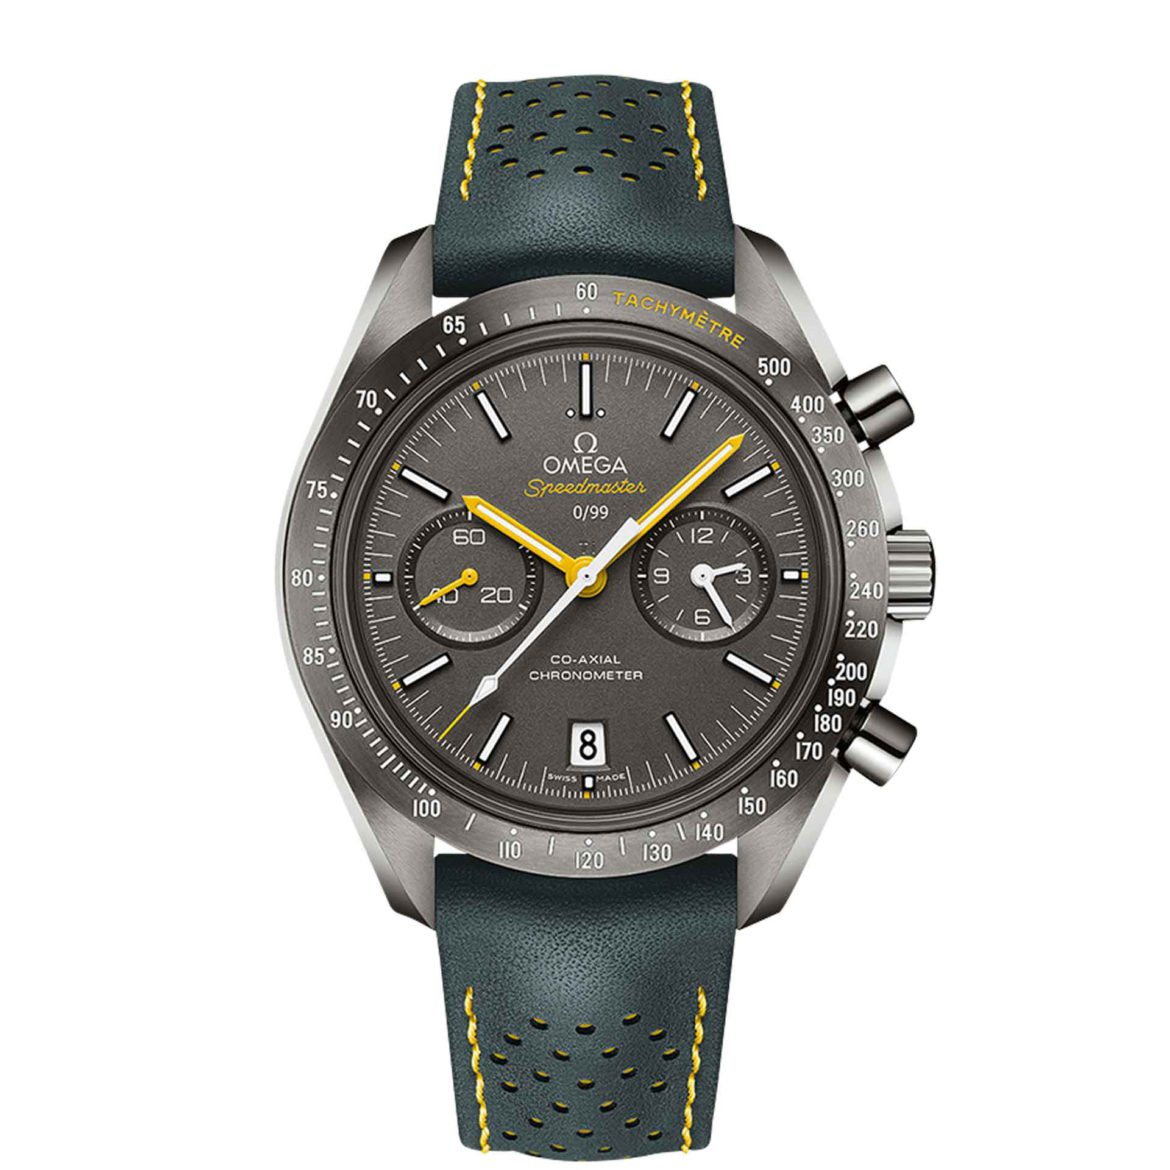 Omega Speedmaster Grey Side of the Moon Porsche Club of America Limited Edition 311.92.44.51.99.001